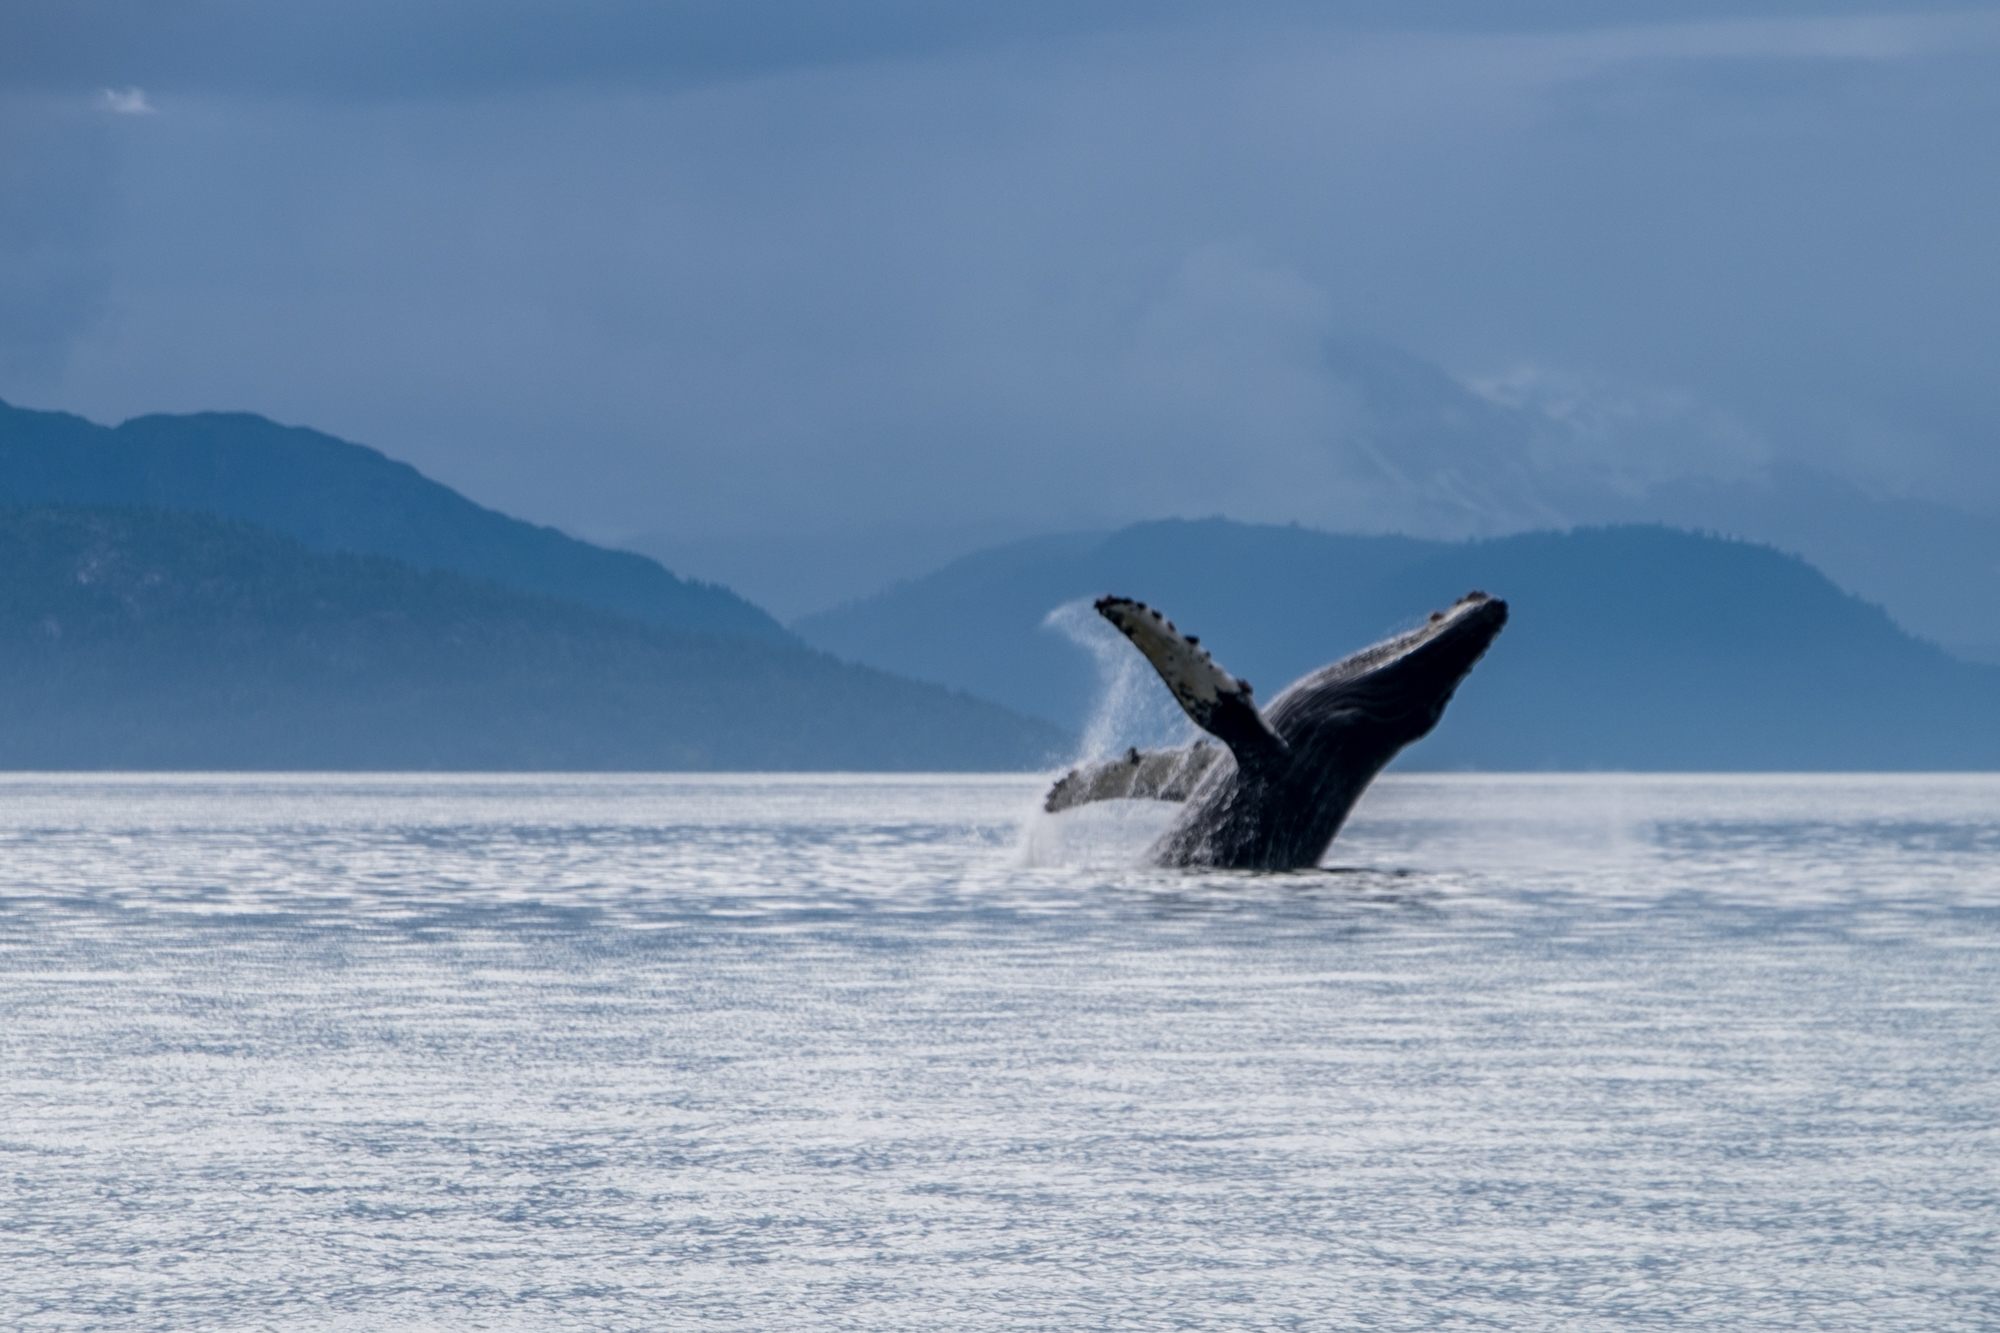 Finally, we got up close and personal with some whales, and it was the highlight of our time in Glacier Bay.